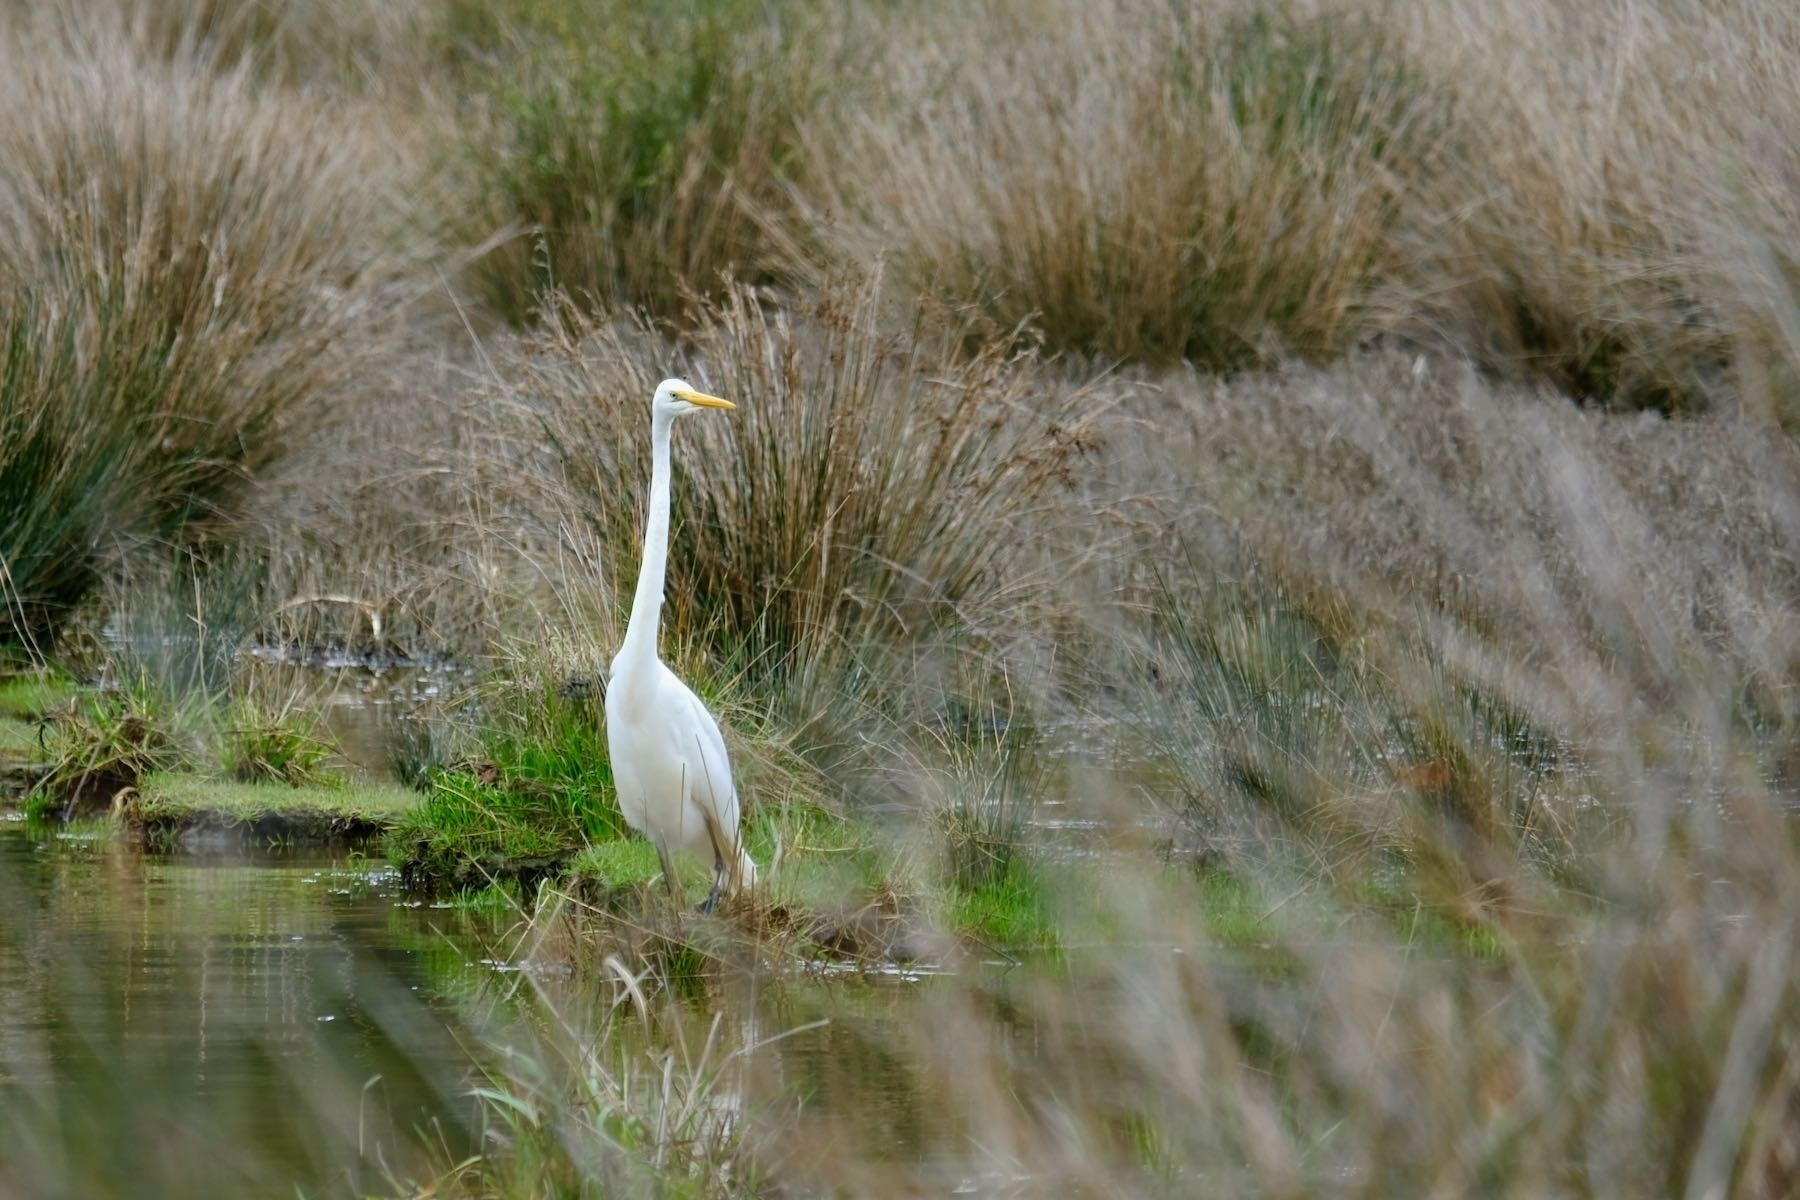 Very large white bird at water's edge, with neck extended.